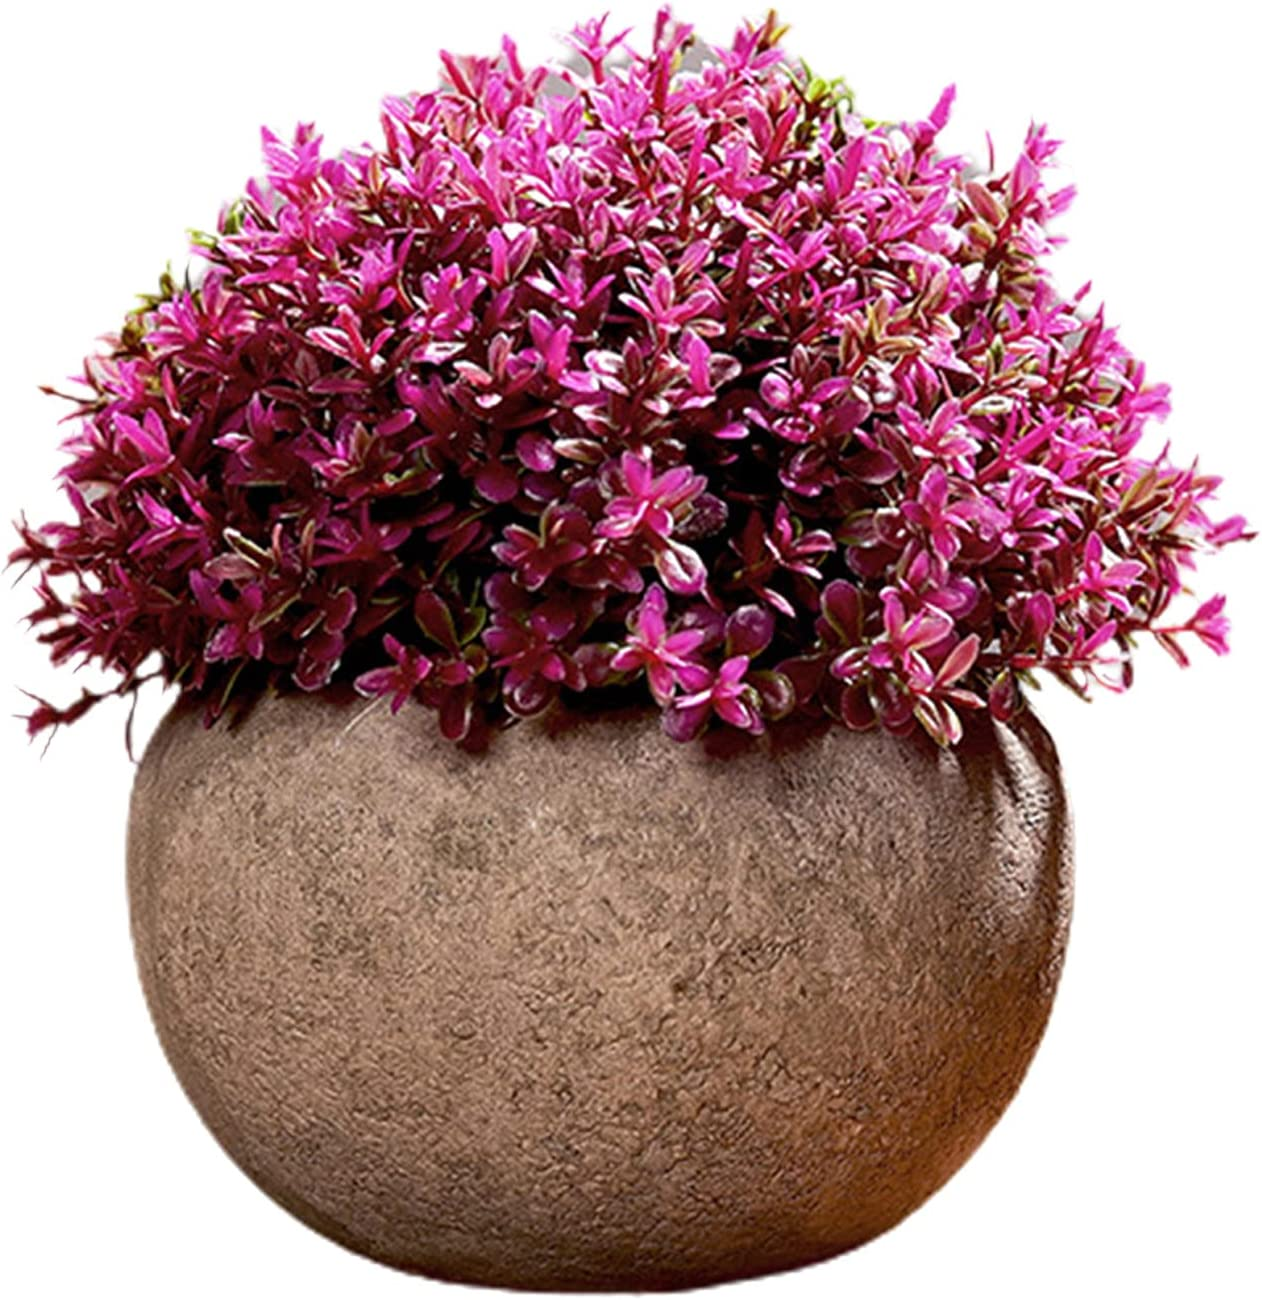 Simulation Potted Fresh Rare Home Decoration Ball Rural Grass Plastic Department store